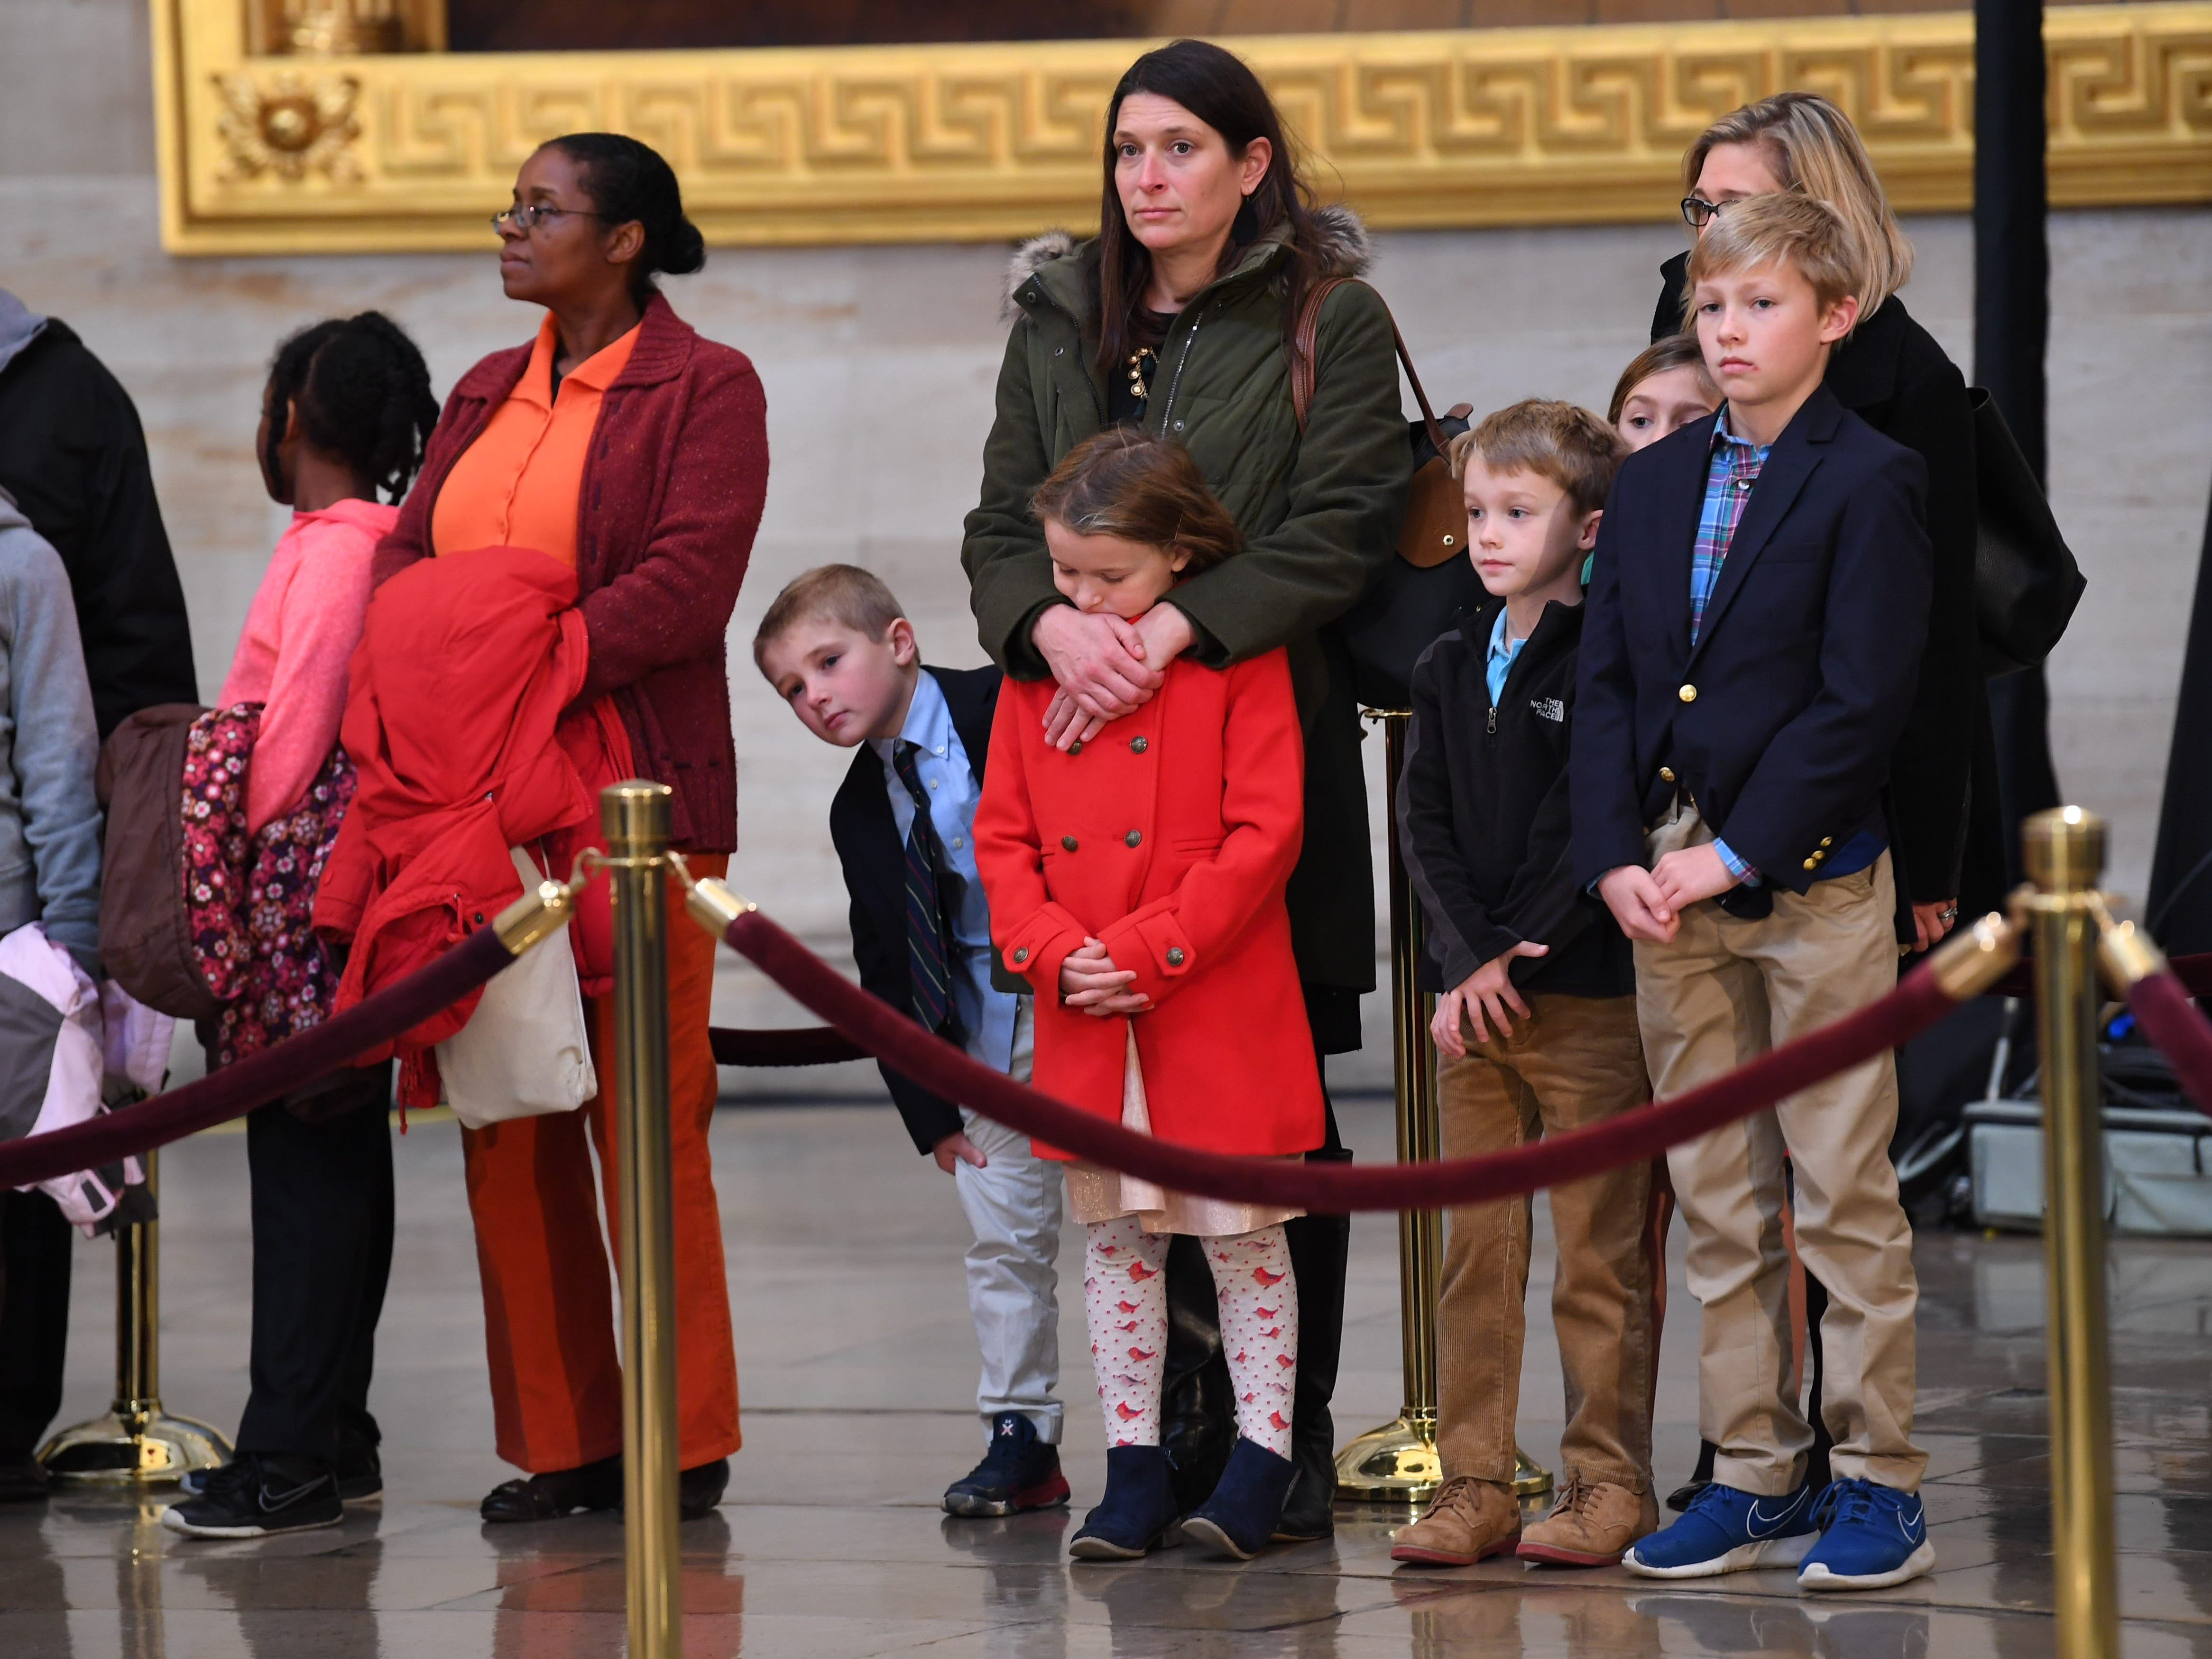 12/4/18 9:10:54 AM -- Washington, DC, U.S.A  -- Visitors to the Capitol Rotunda pay respects to President George H.W. Bush as he lies in state at the U.S. Capitol Rotunda. --    Photo by Jack Gruber, USA TODAY staff ORG XMIT:  JG 137685 Arrival and Fune 12/4/2018 (Via OlyDrop)